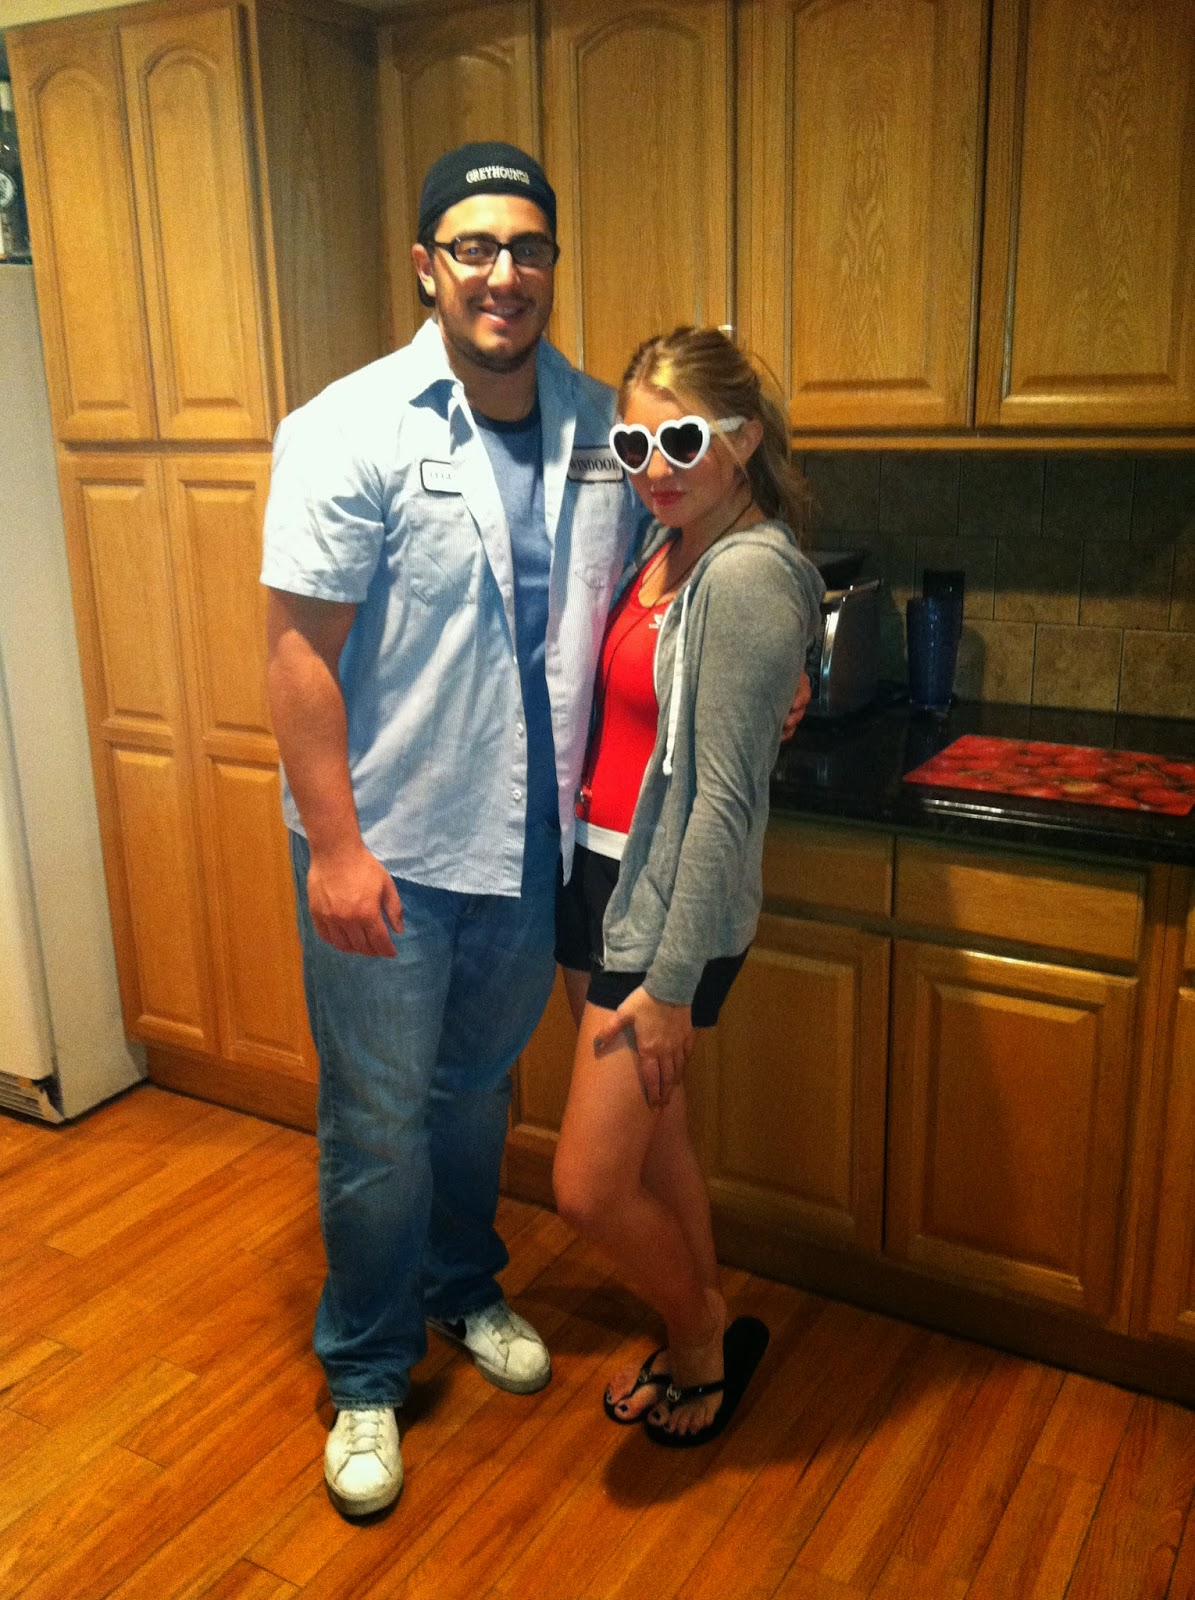 our halloween costume wendy peffercorn squints from the sandlot are you attending a halloween party this year if so what are you going to be